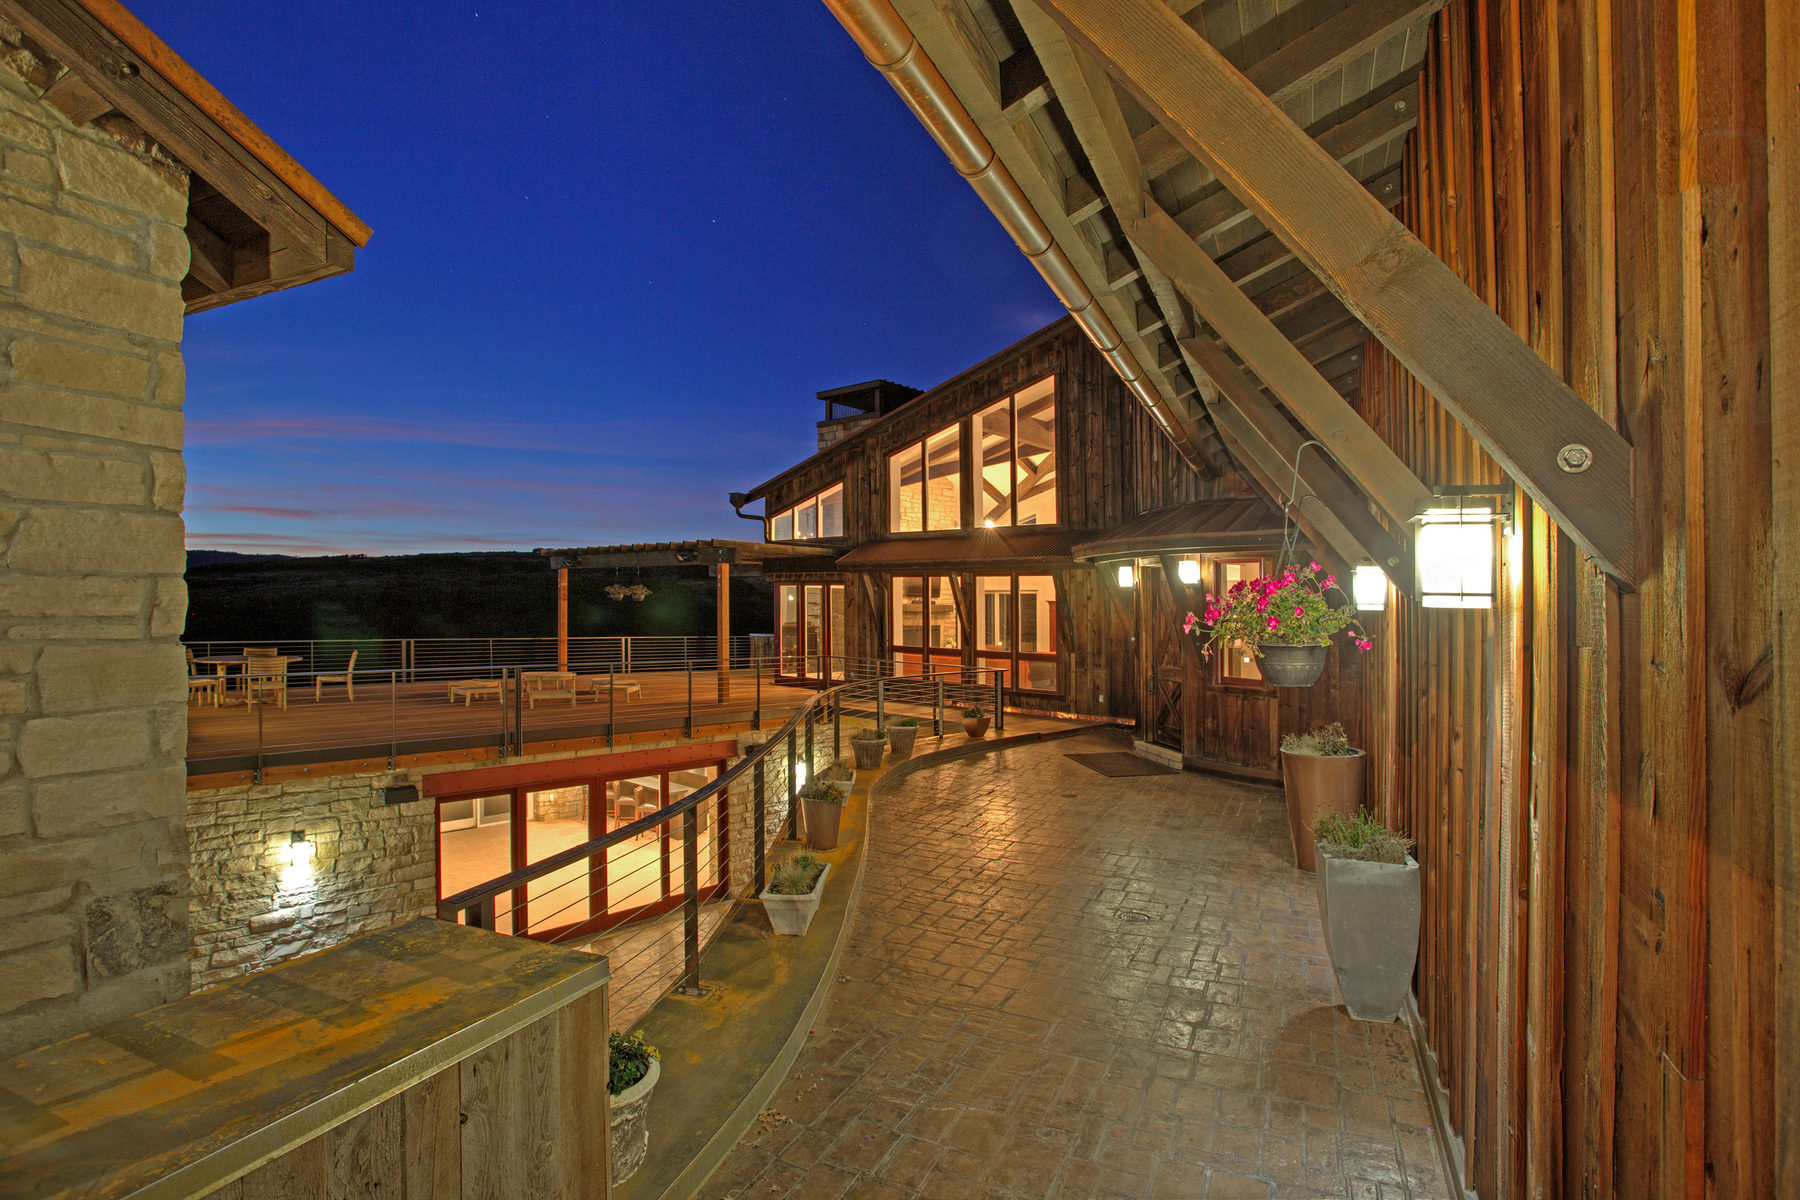 獨棟家庭住宅 為 出售 在 An Extraordinary Value on an Extraordinary Home 8293 N Ranch Garden Rd Park City, 猶他州, 84098 美國